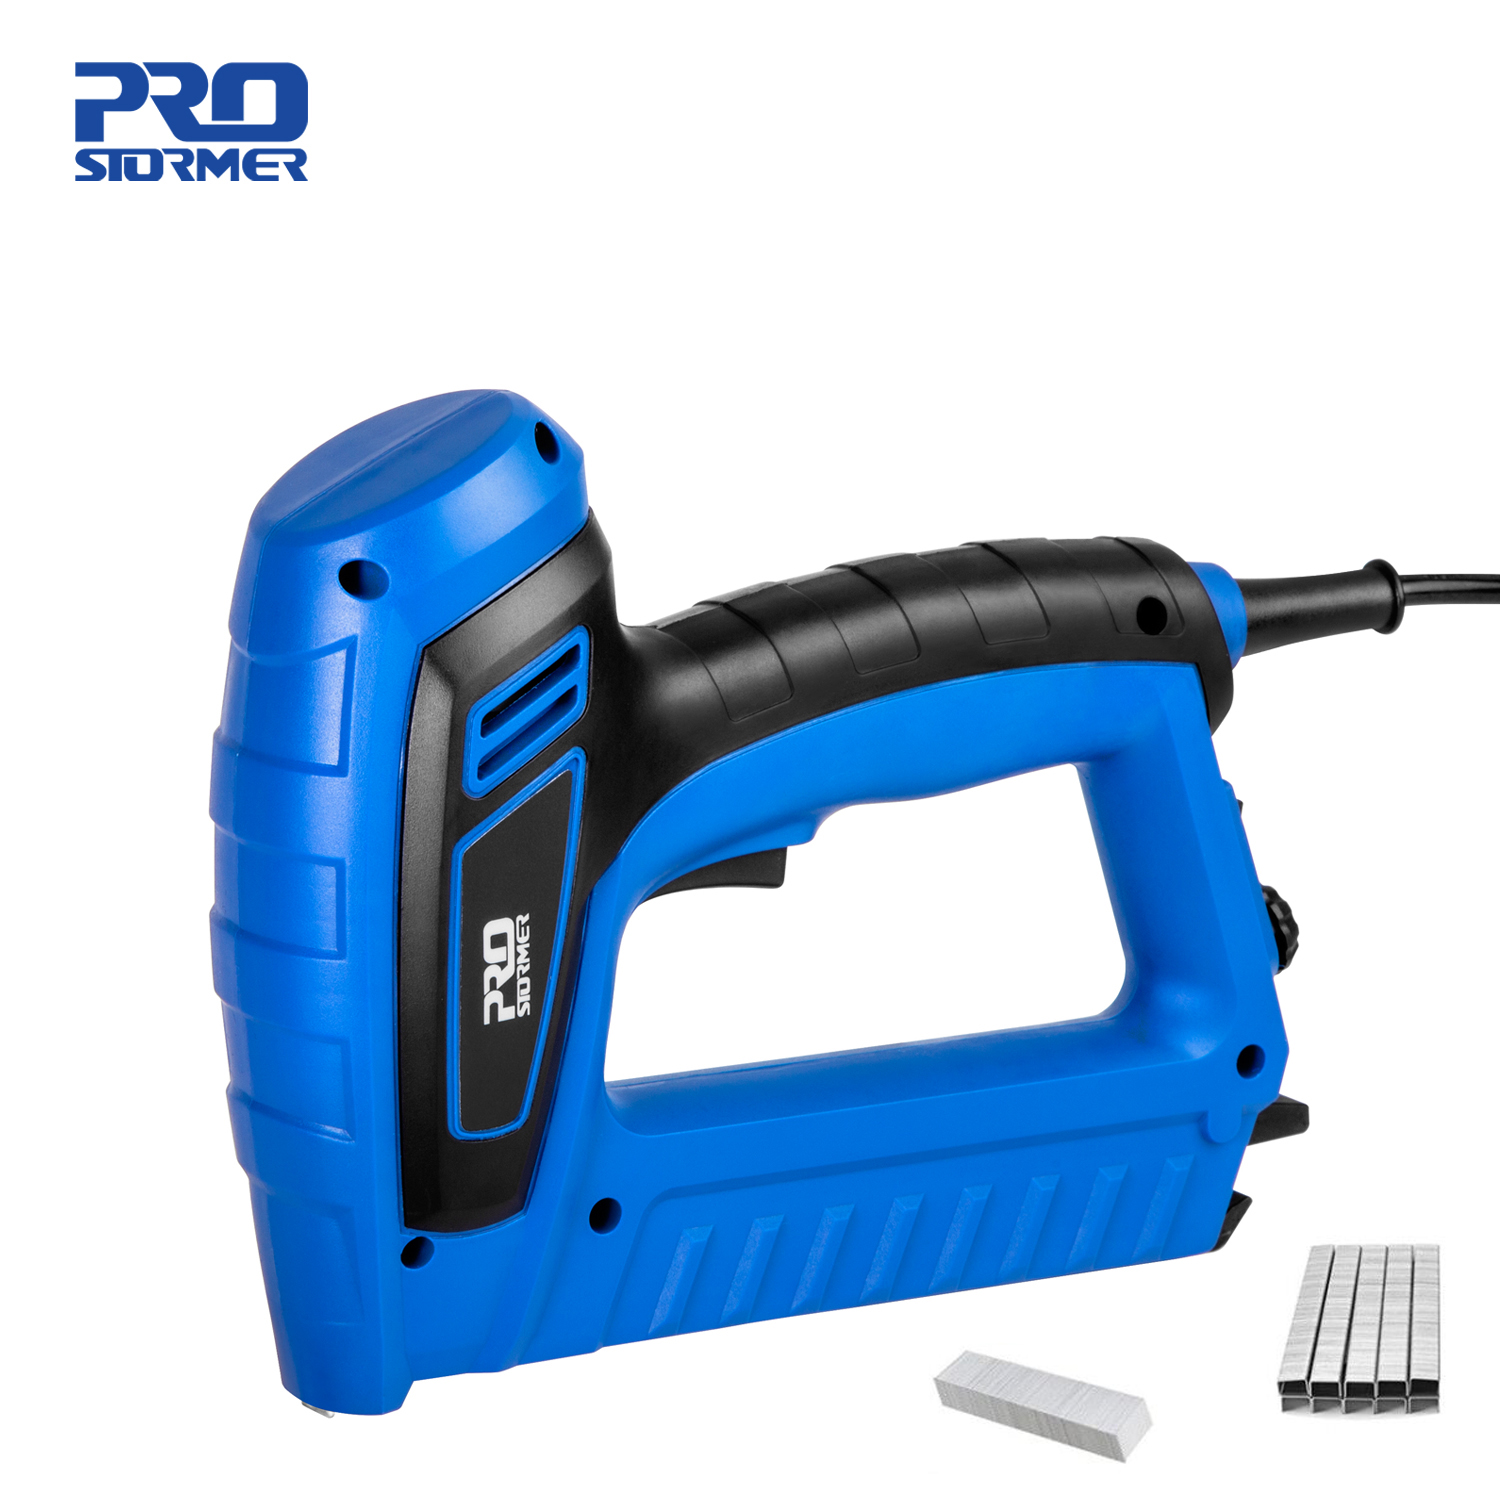 2000W Electric Nail Gun 220V-240V Nailer Stapler Woodworking Electric Tacker Furniture Staple Gun Power Tools by PROSTORMER